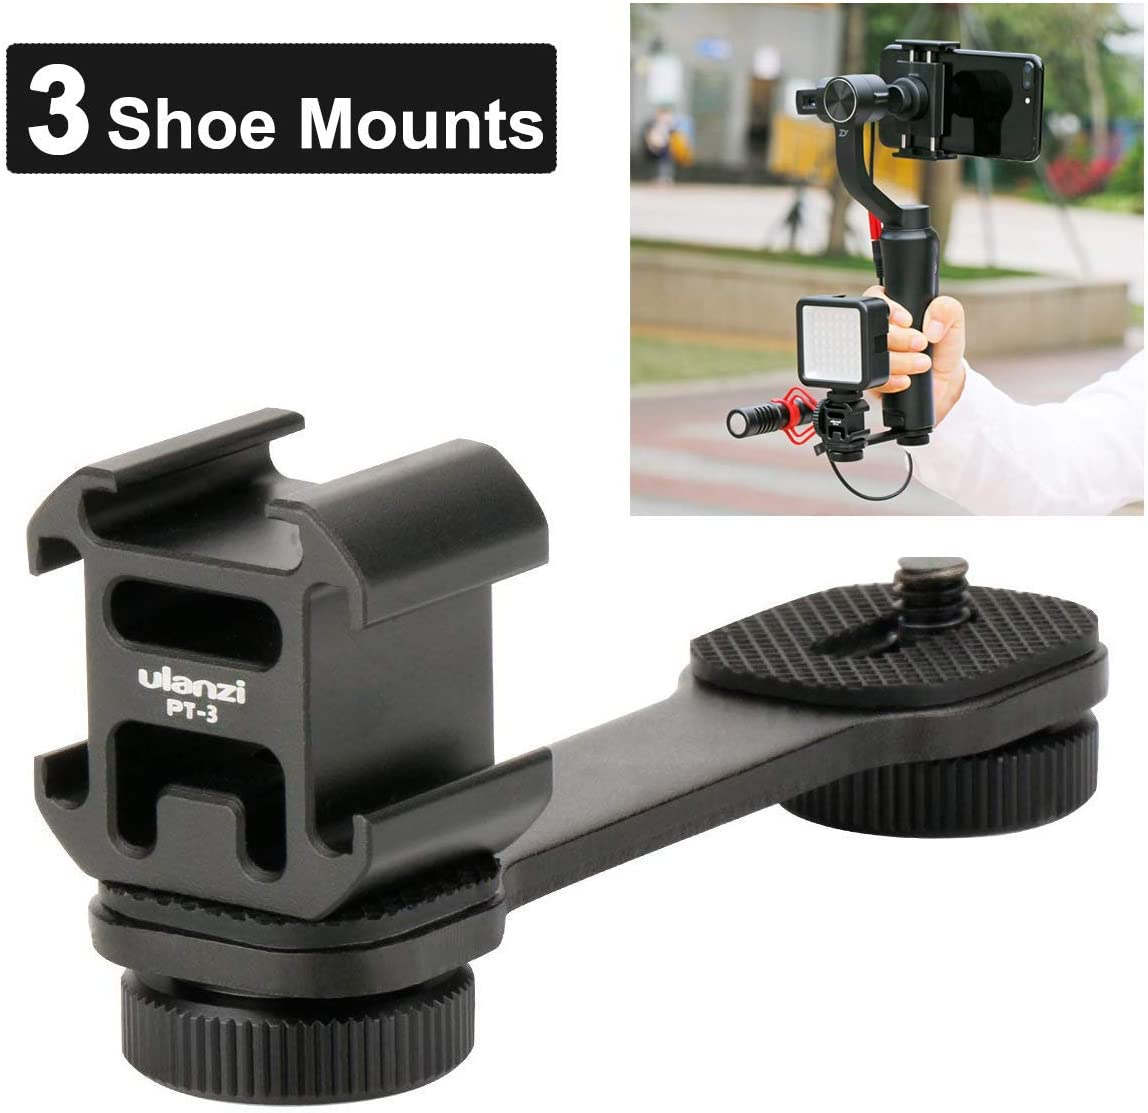 Ulanzi PT-3 Triple Cold Shoe Gimbal Microphone Mount Extenstion Bar, w 1/4 inch Adapter Video Light Microphone Mount Compatible for DJI OM 4/OSMO Mobile3/Zhiyun Smooth q 4/Feiyu Gimbal Stabilizer : Camera & Photo